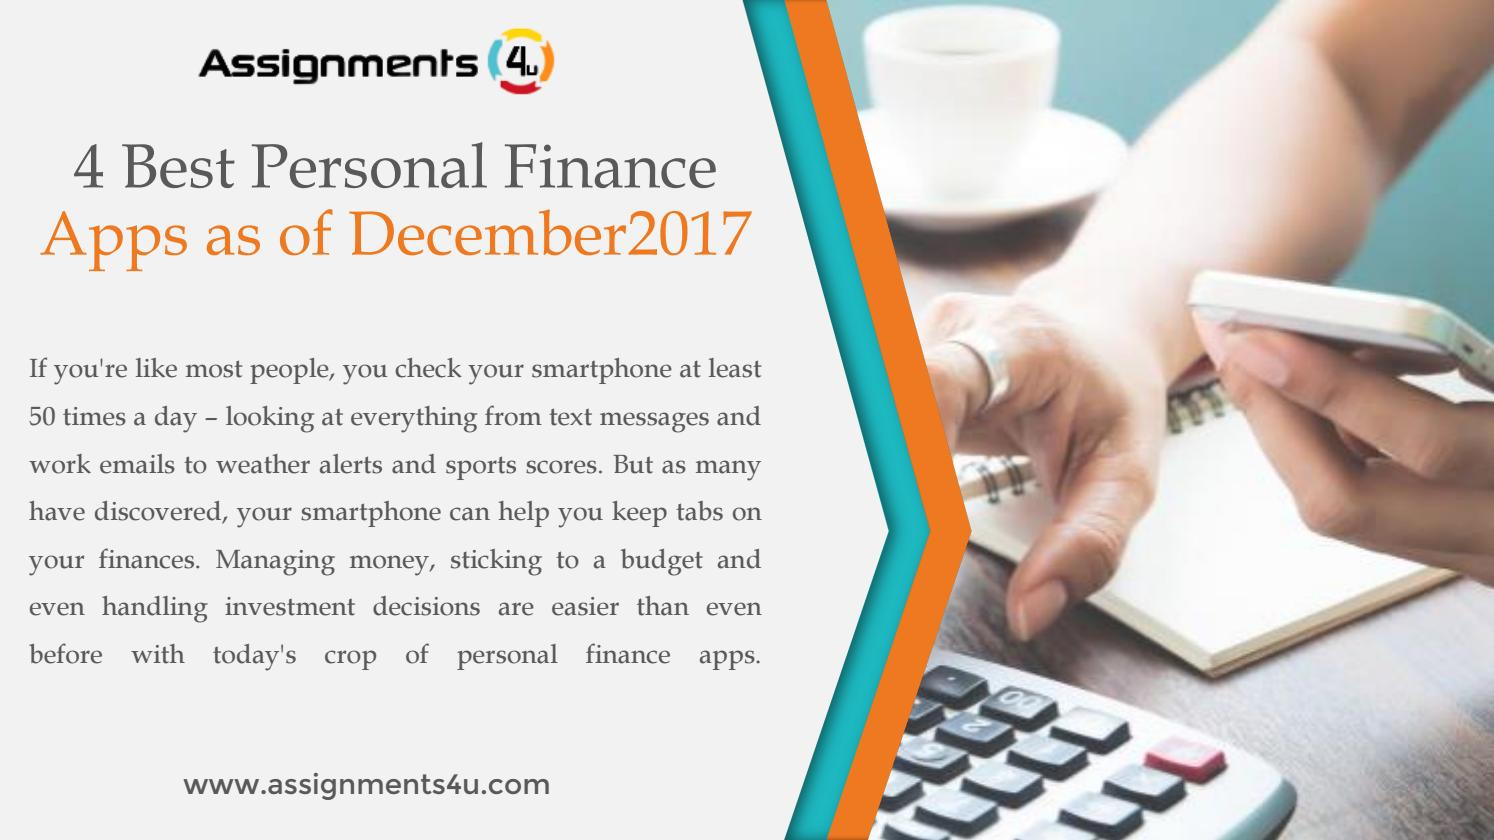 There are 4 best personal finance apps as of december 2017